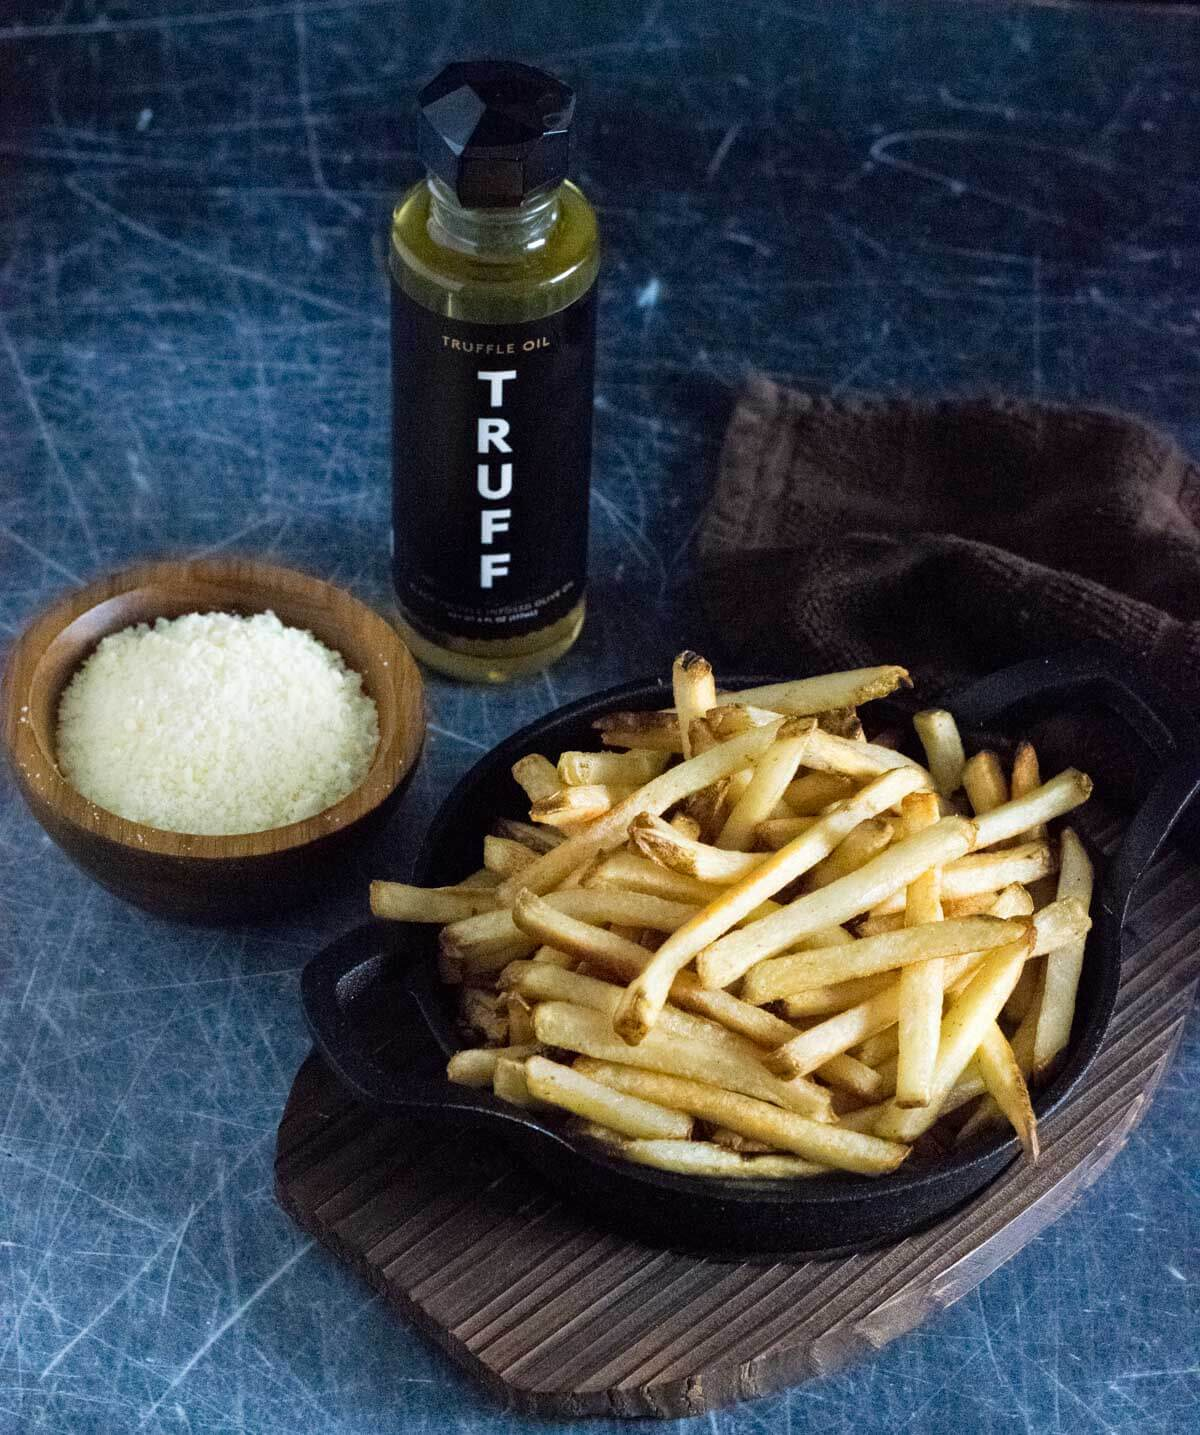 Showing ingredients for truffle fries recipe.